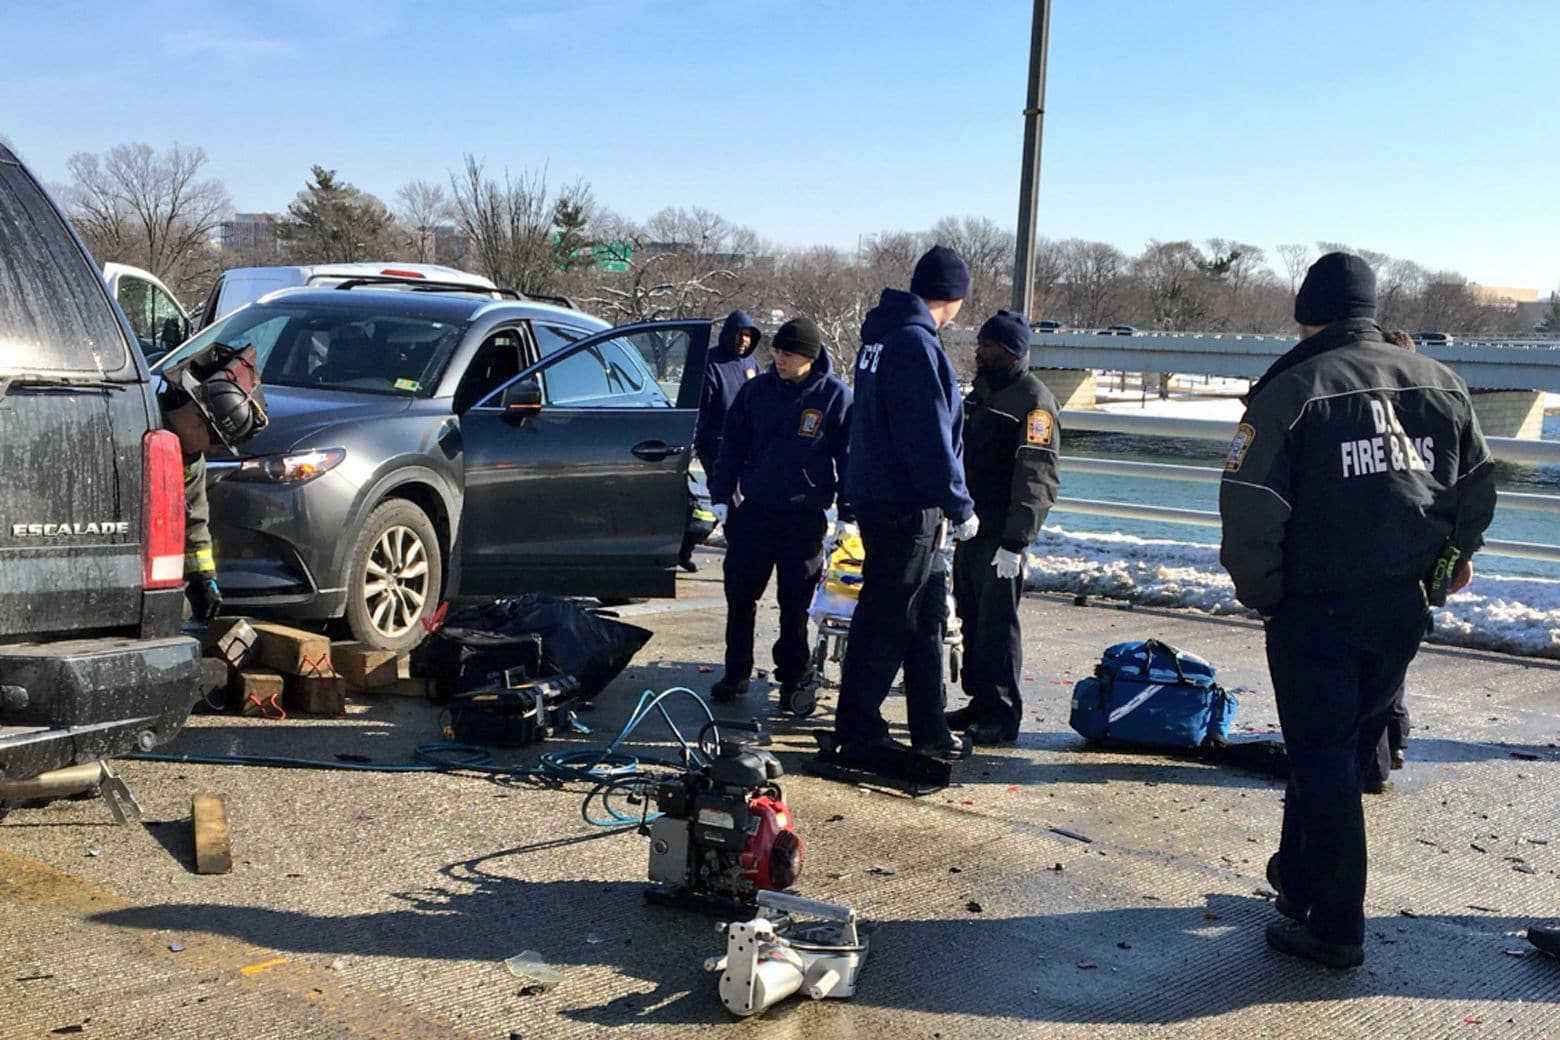 Authorities on the scene of a crash on the 14th Street Bridge on Tuesday. (Courtesy D.C. Fire and EMS)